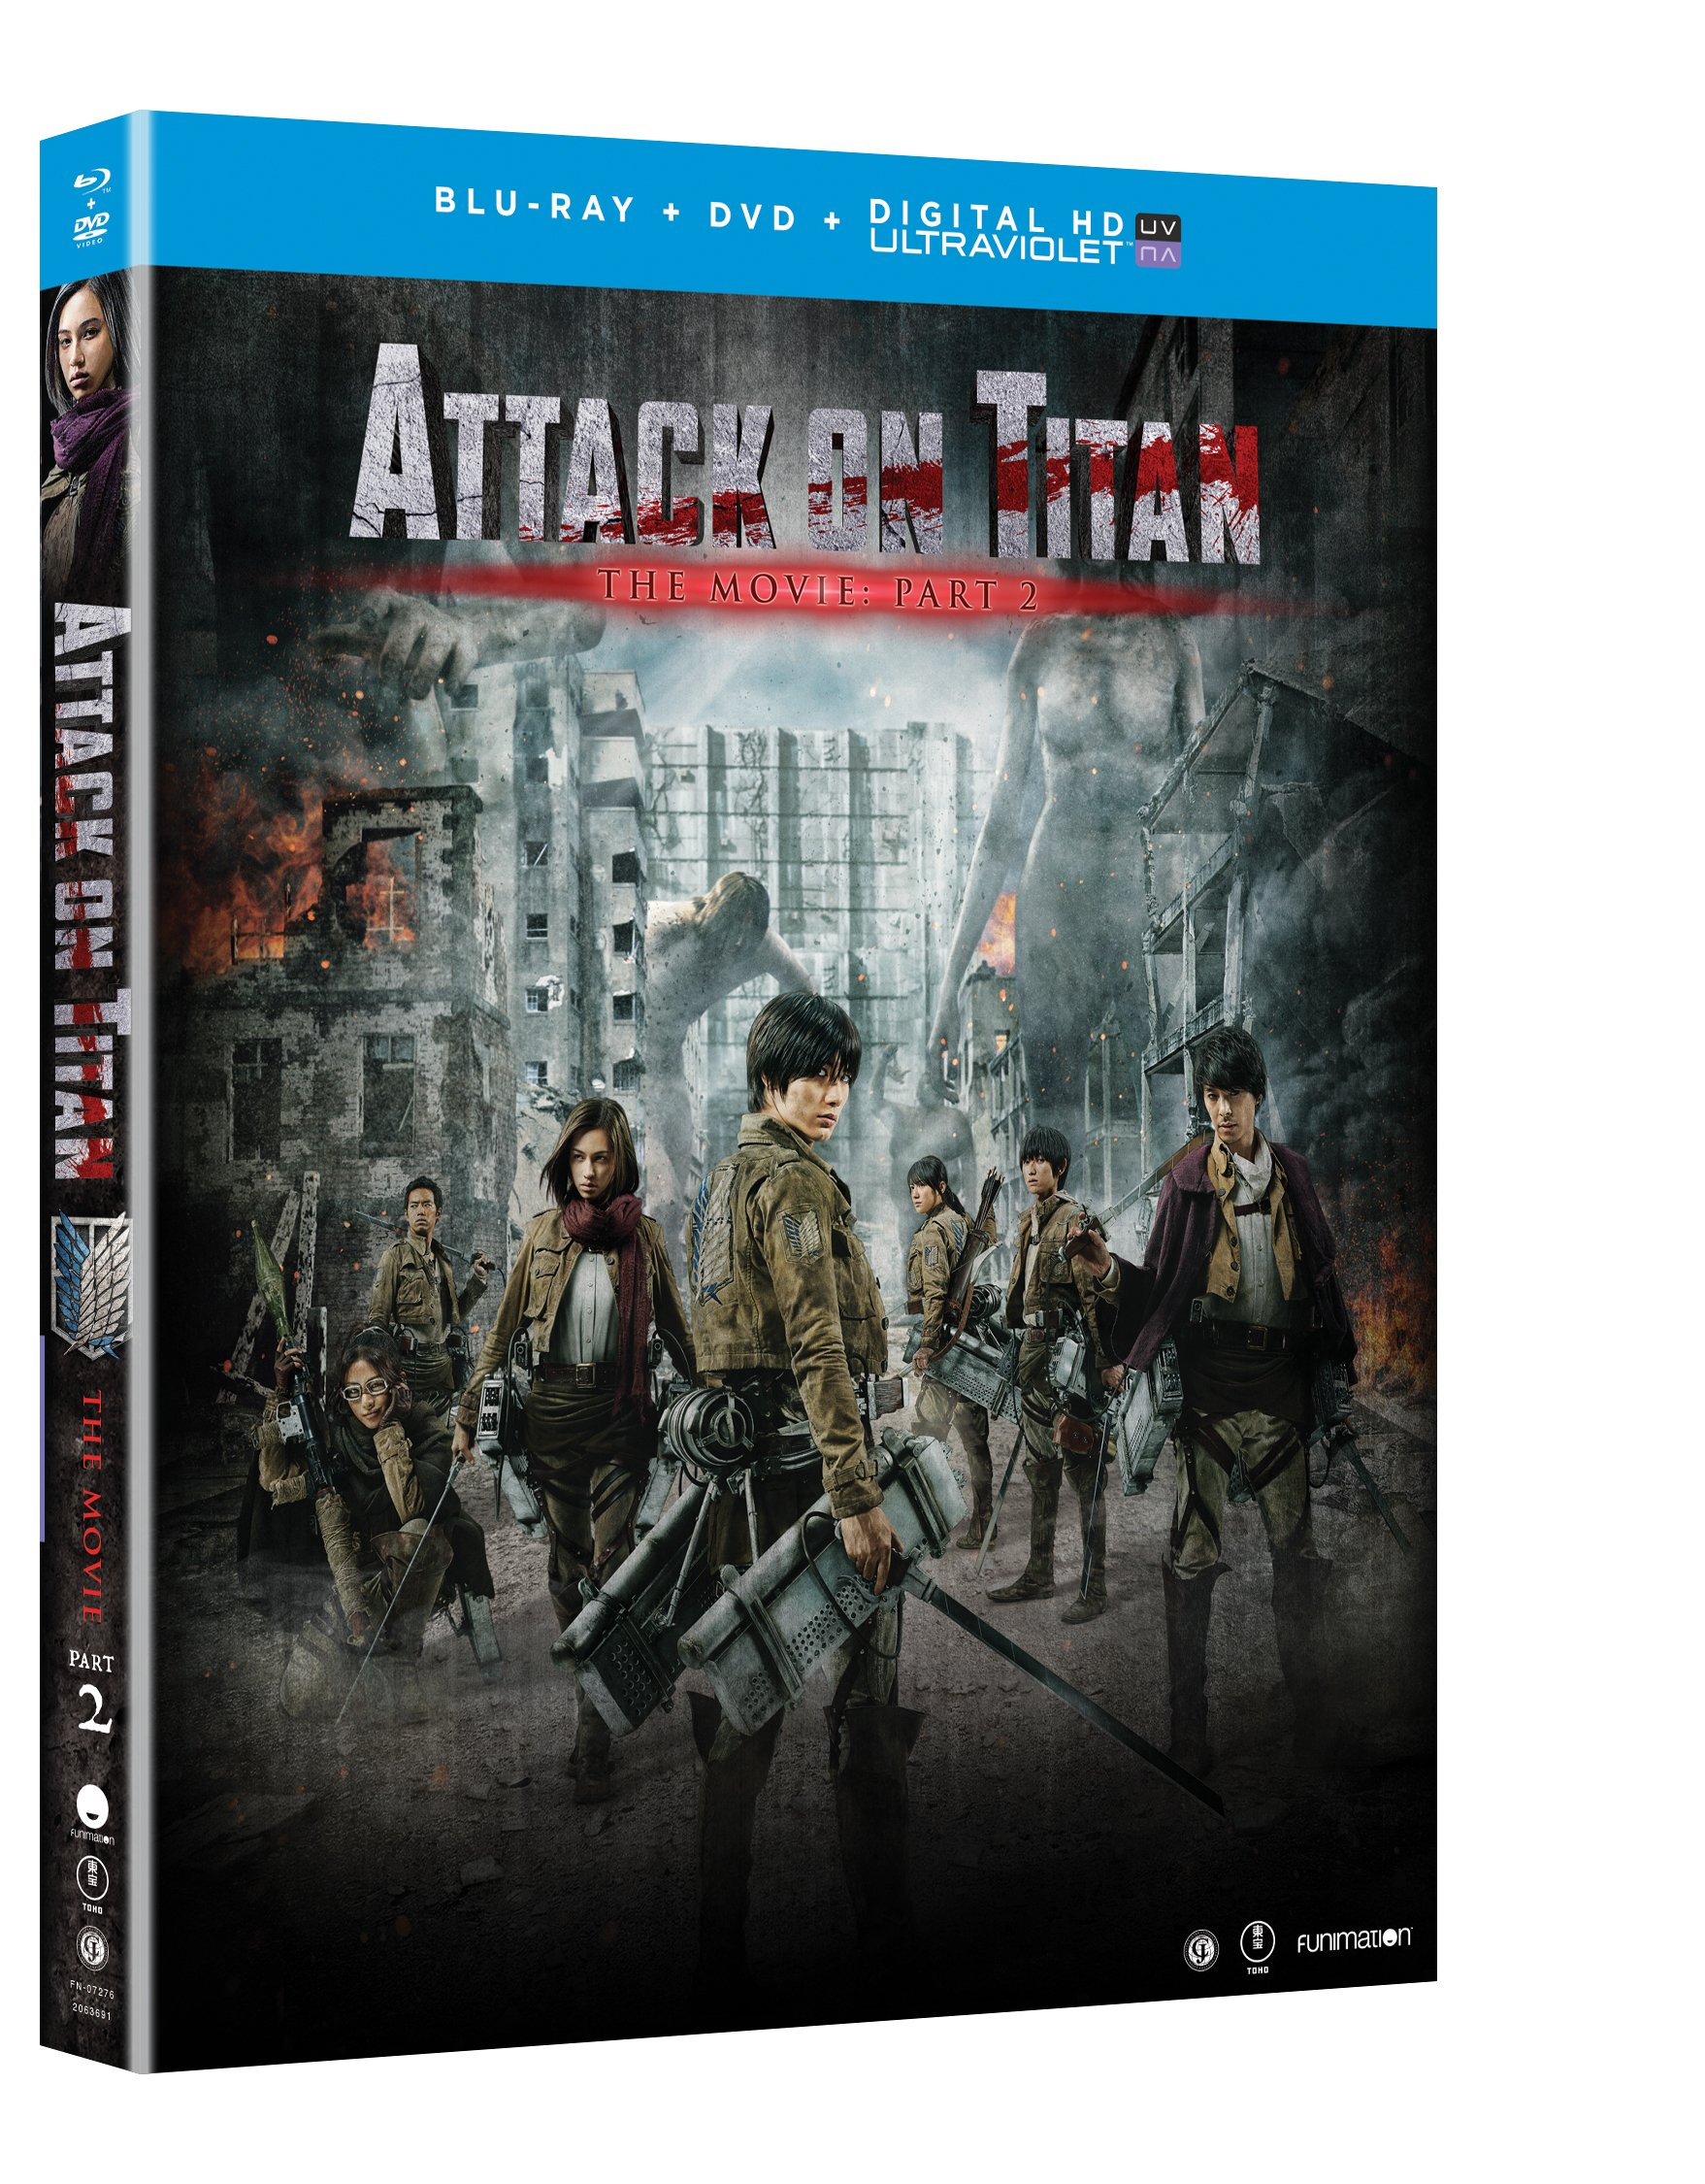 Blu-ray : Attack On Titan The Movie: Part 2 (With DVD, Ultraviolet Digital Copy, 2 Disc)